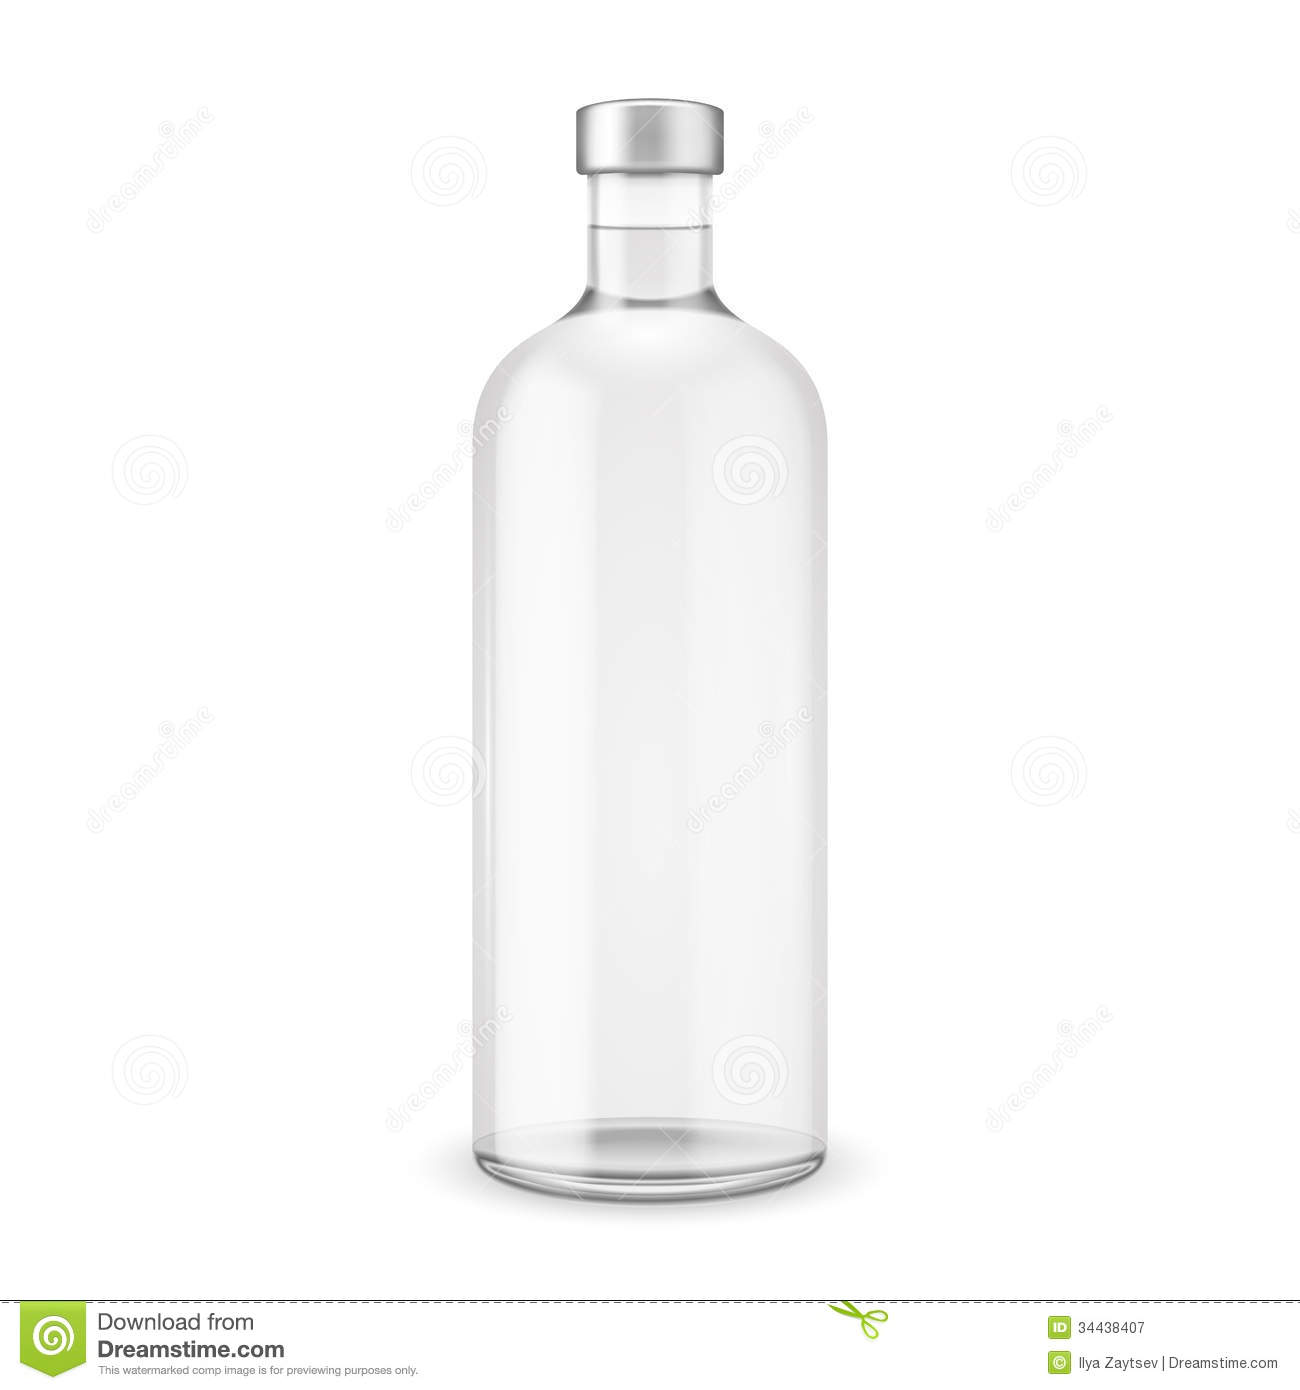 Glass Vodka Bottle With Silver Cap  Vector Illustration  Glass Bottle